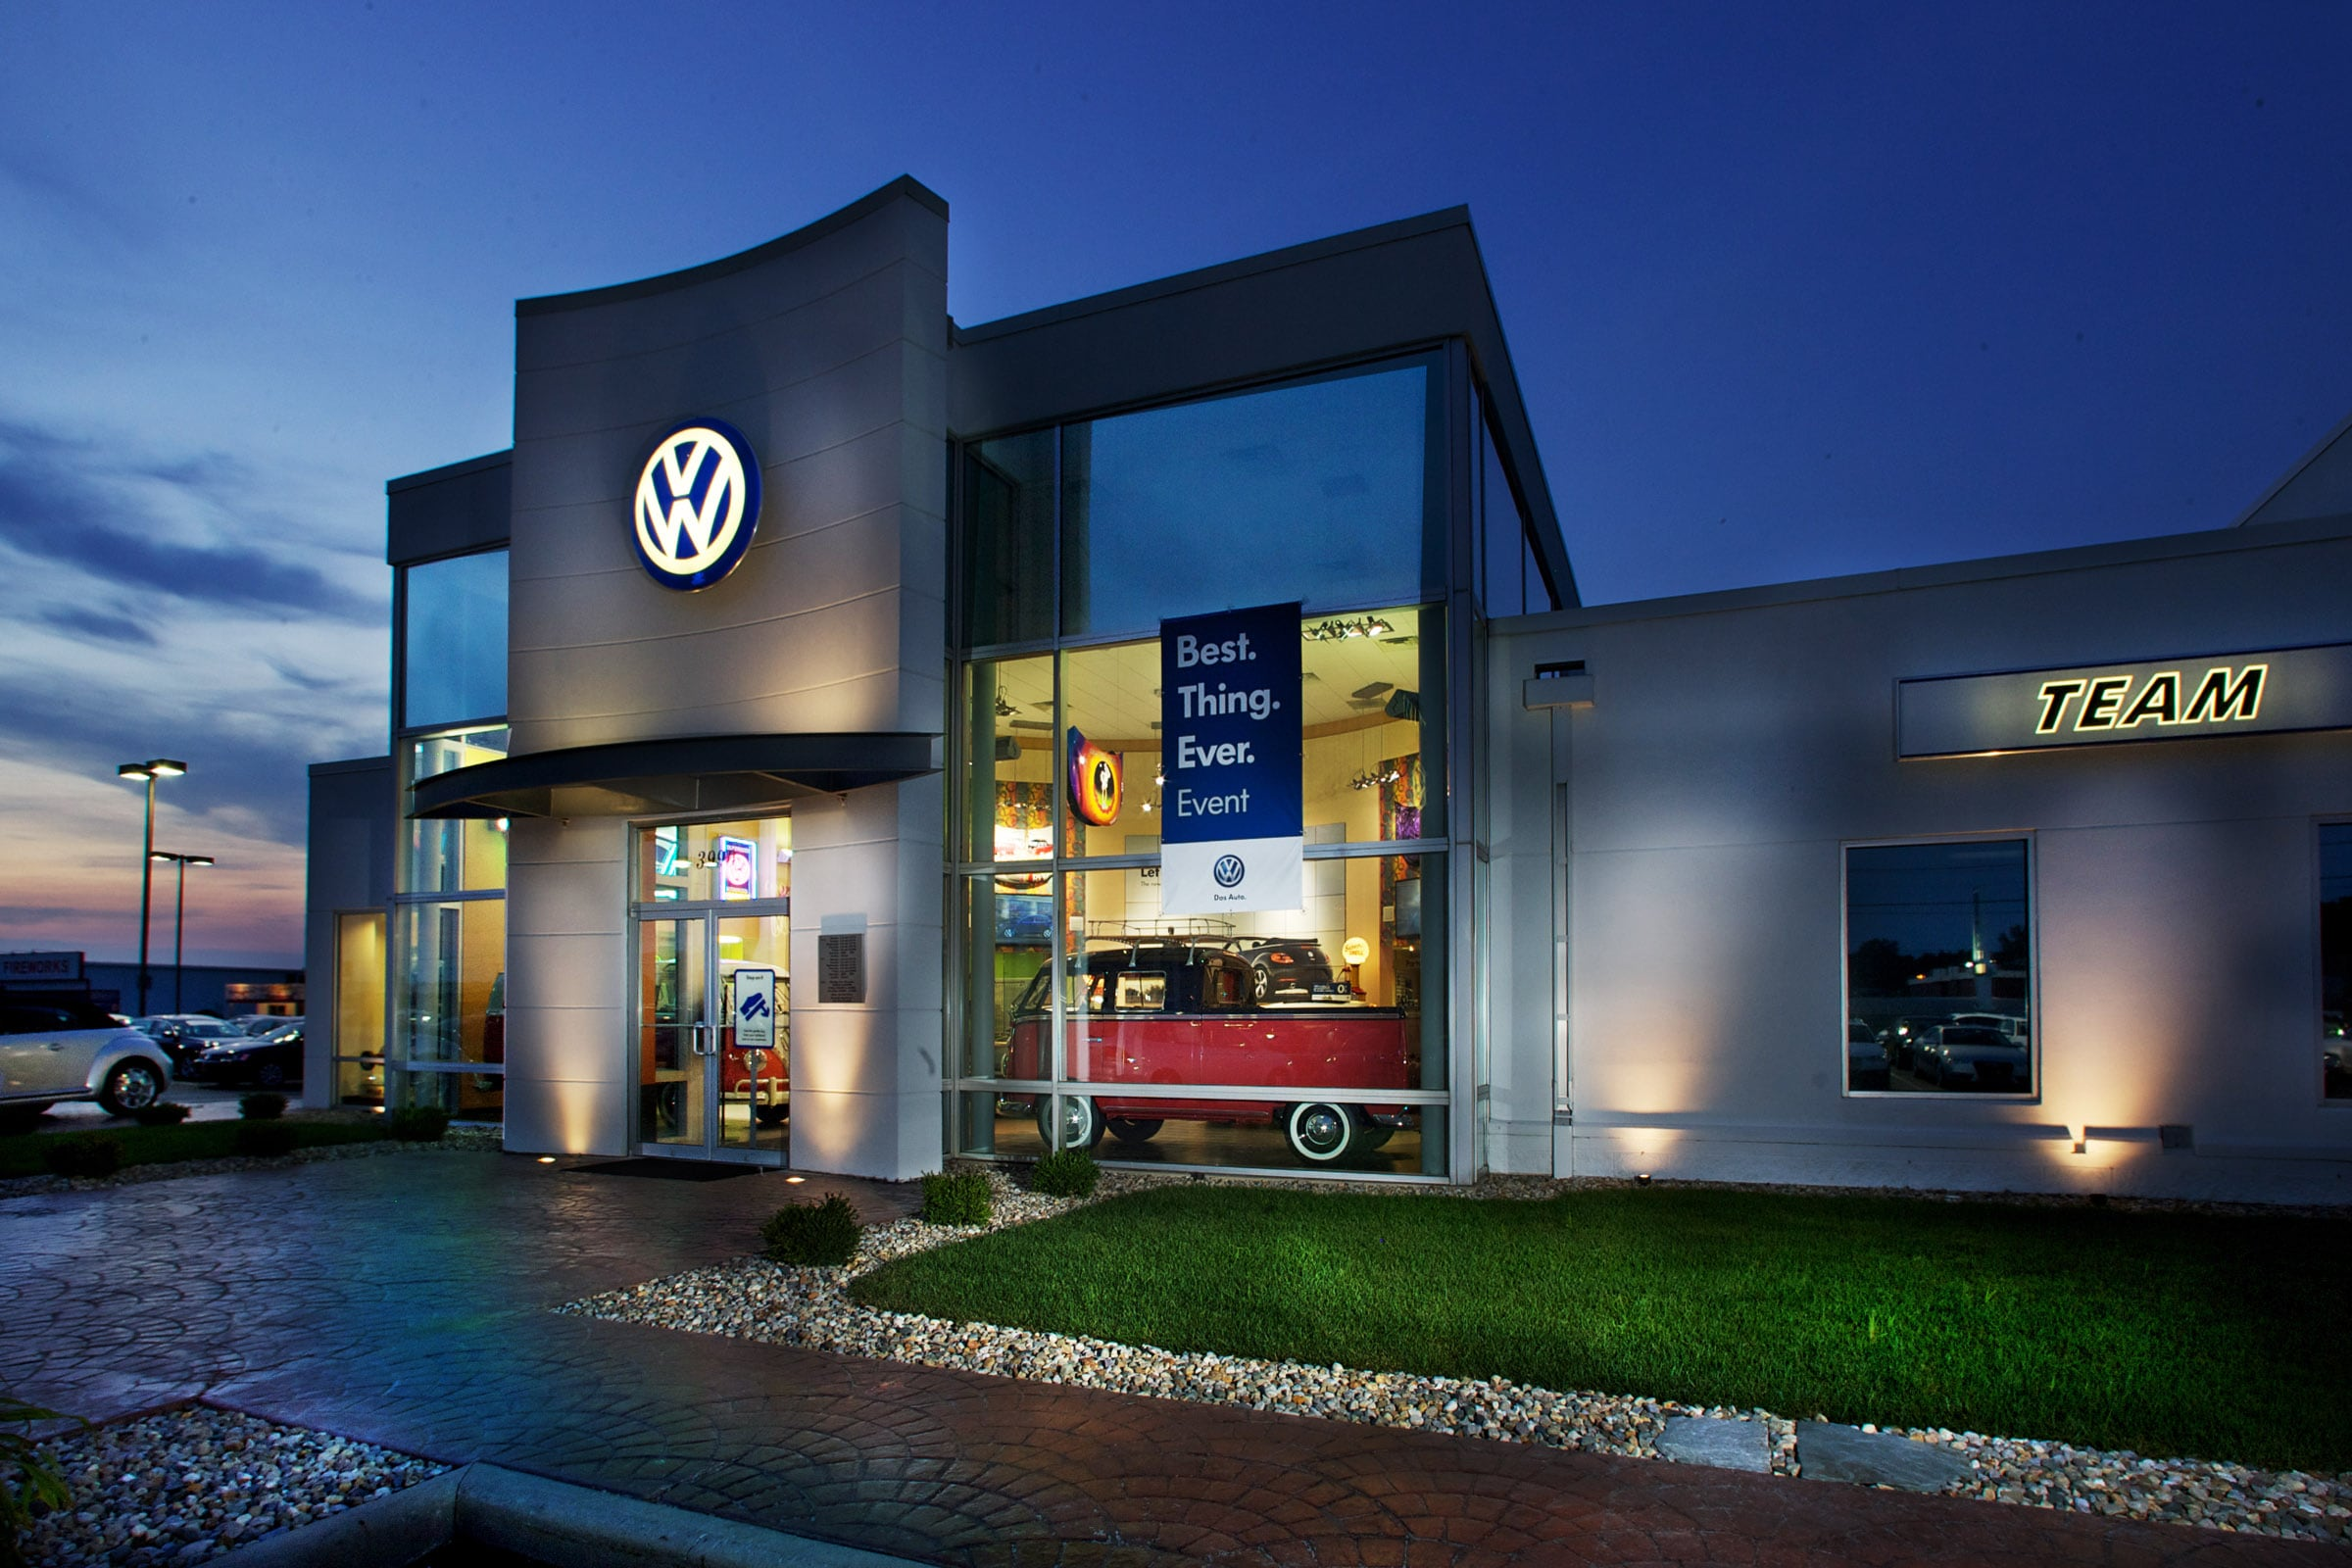 Team VW in Merrillville, IN